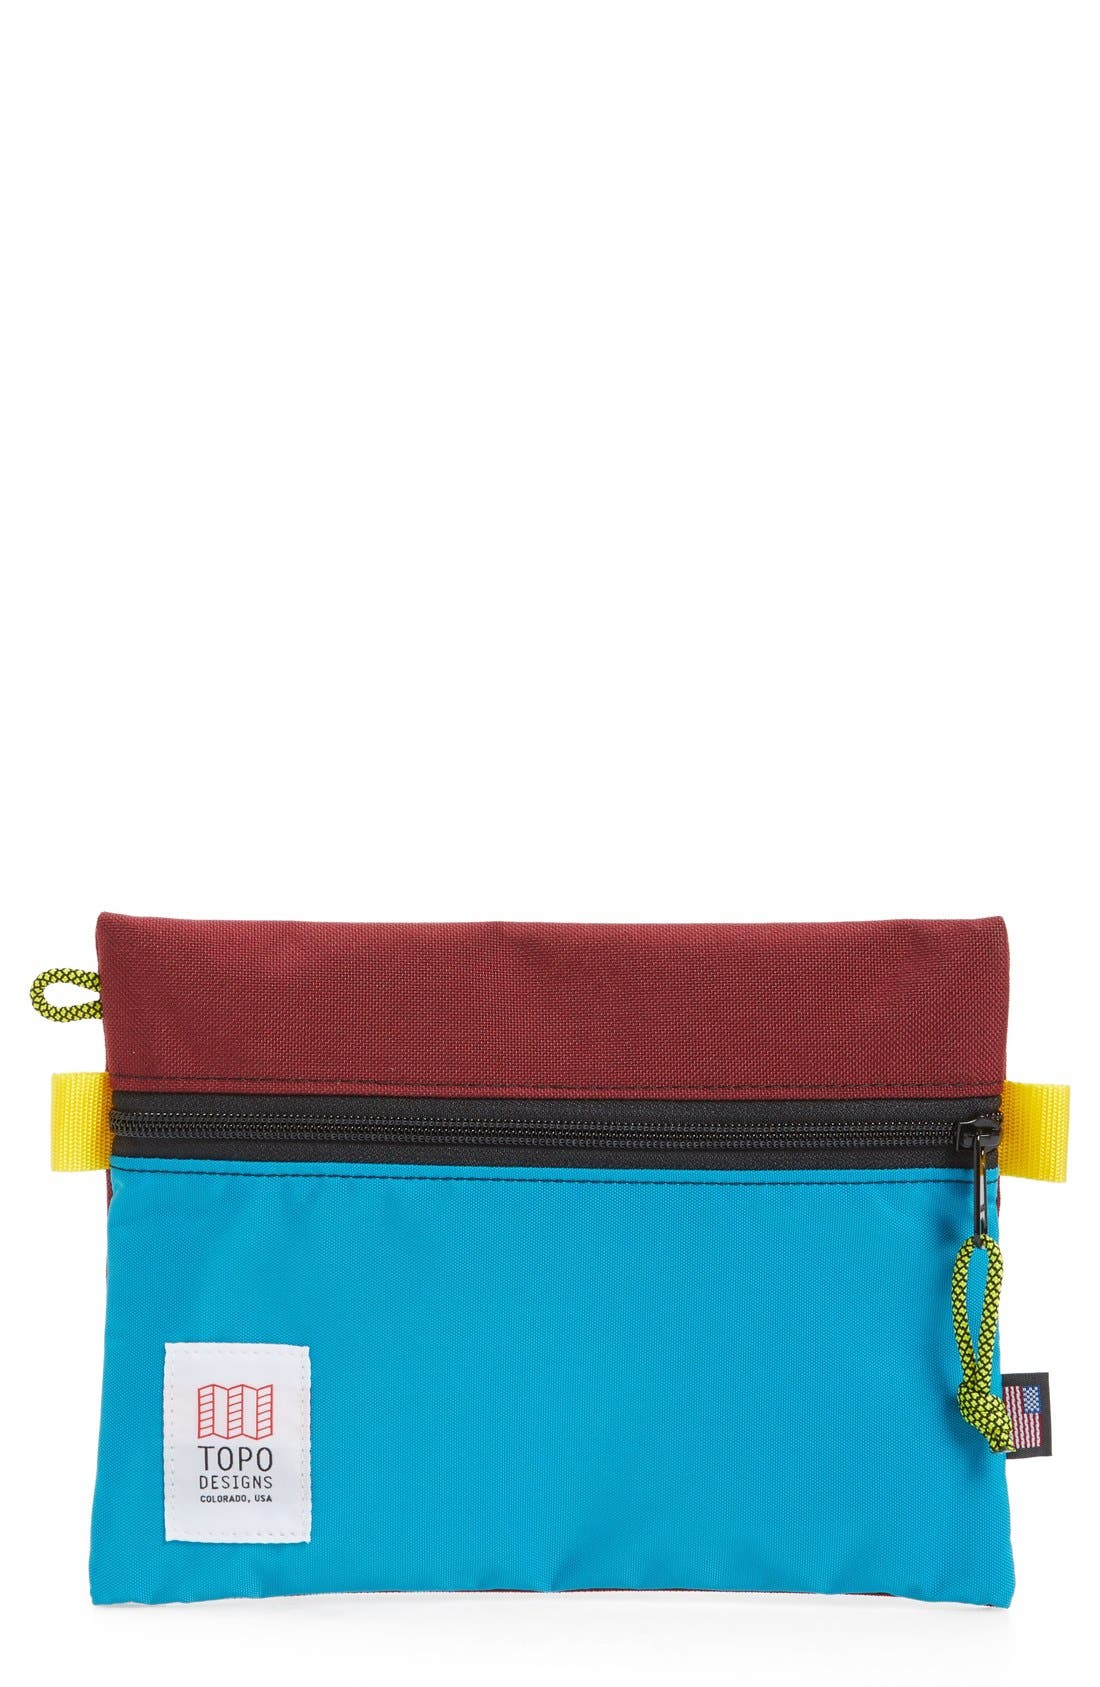 TopoDesigns Accessory Bag,                             Main thumbnail 1, color,                             BURGUNDY/ TURQUOISE